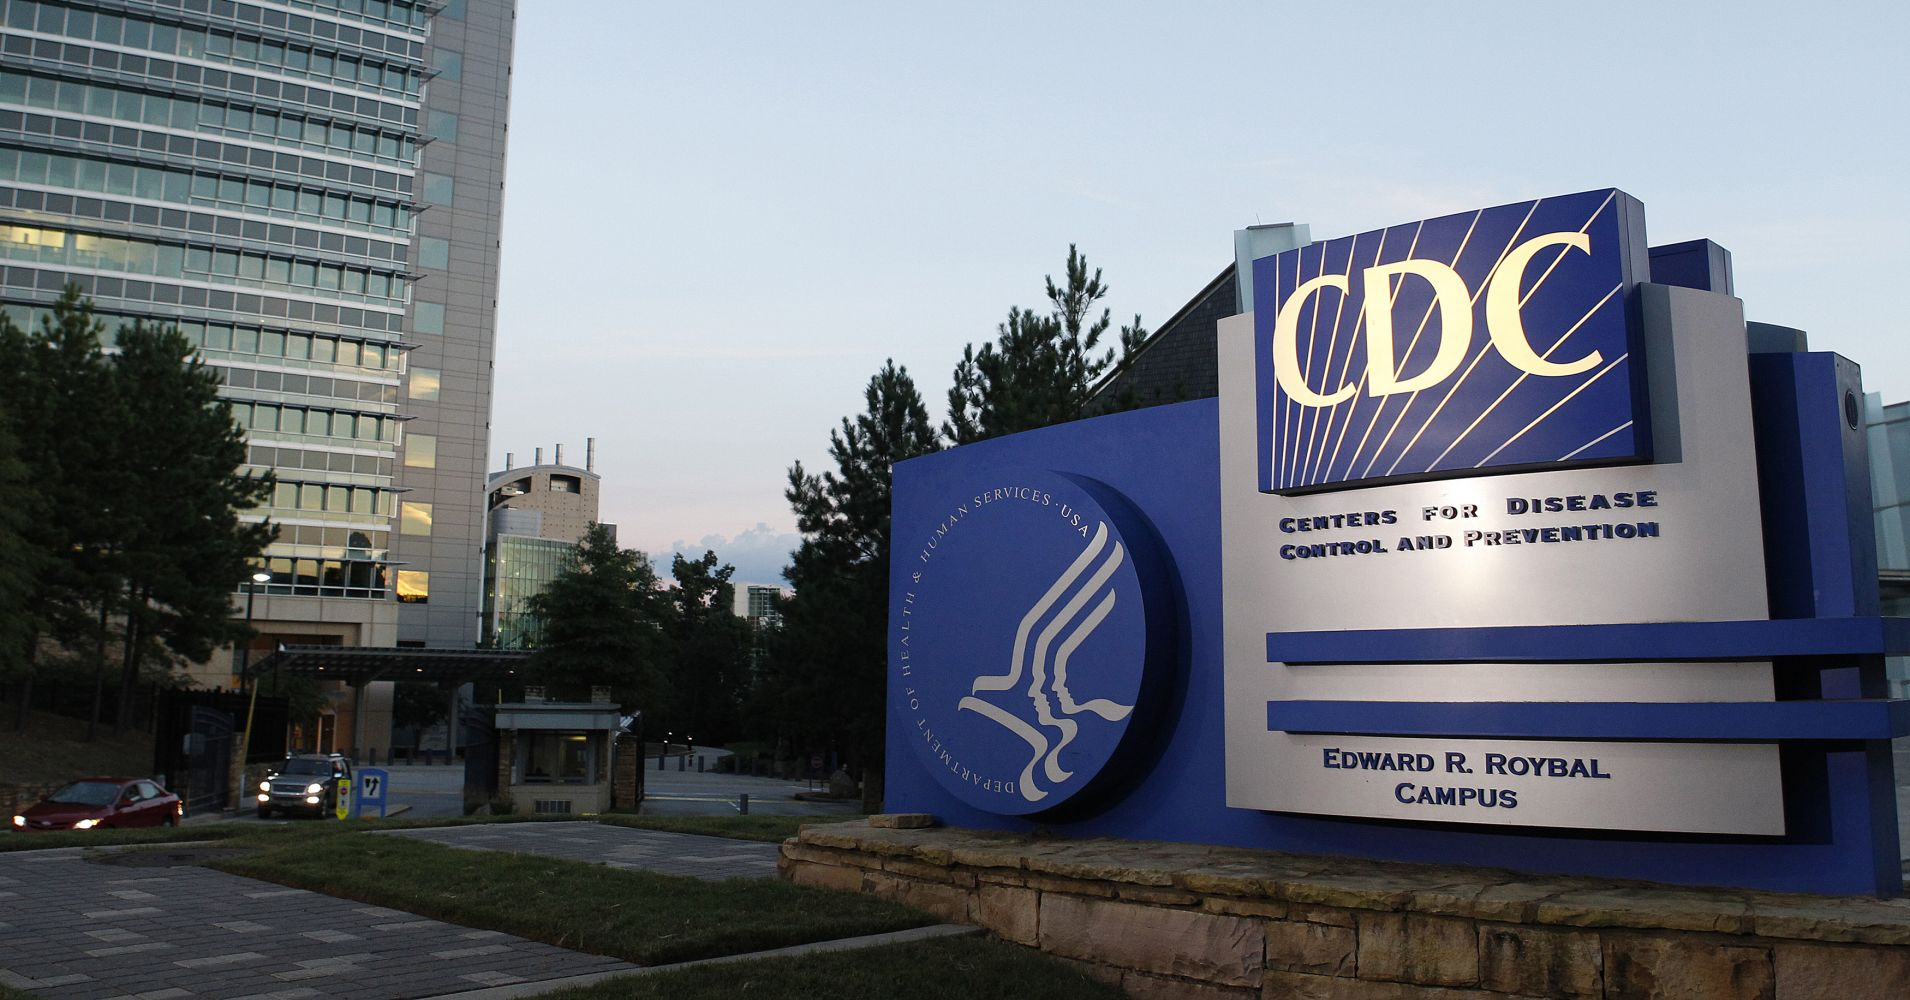 The Centers for Disease Control and Prevention (CDC) headquarters in Atlanta, Georgia.